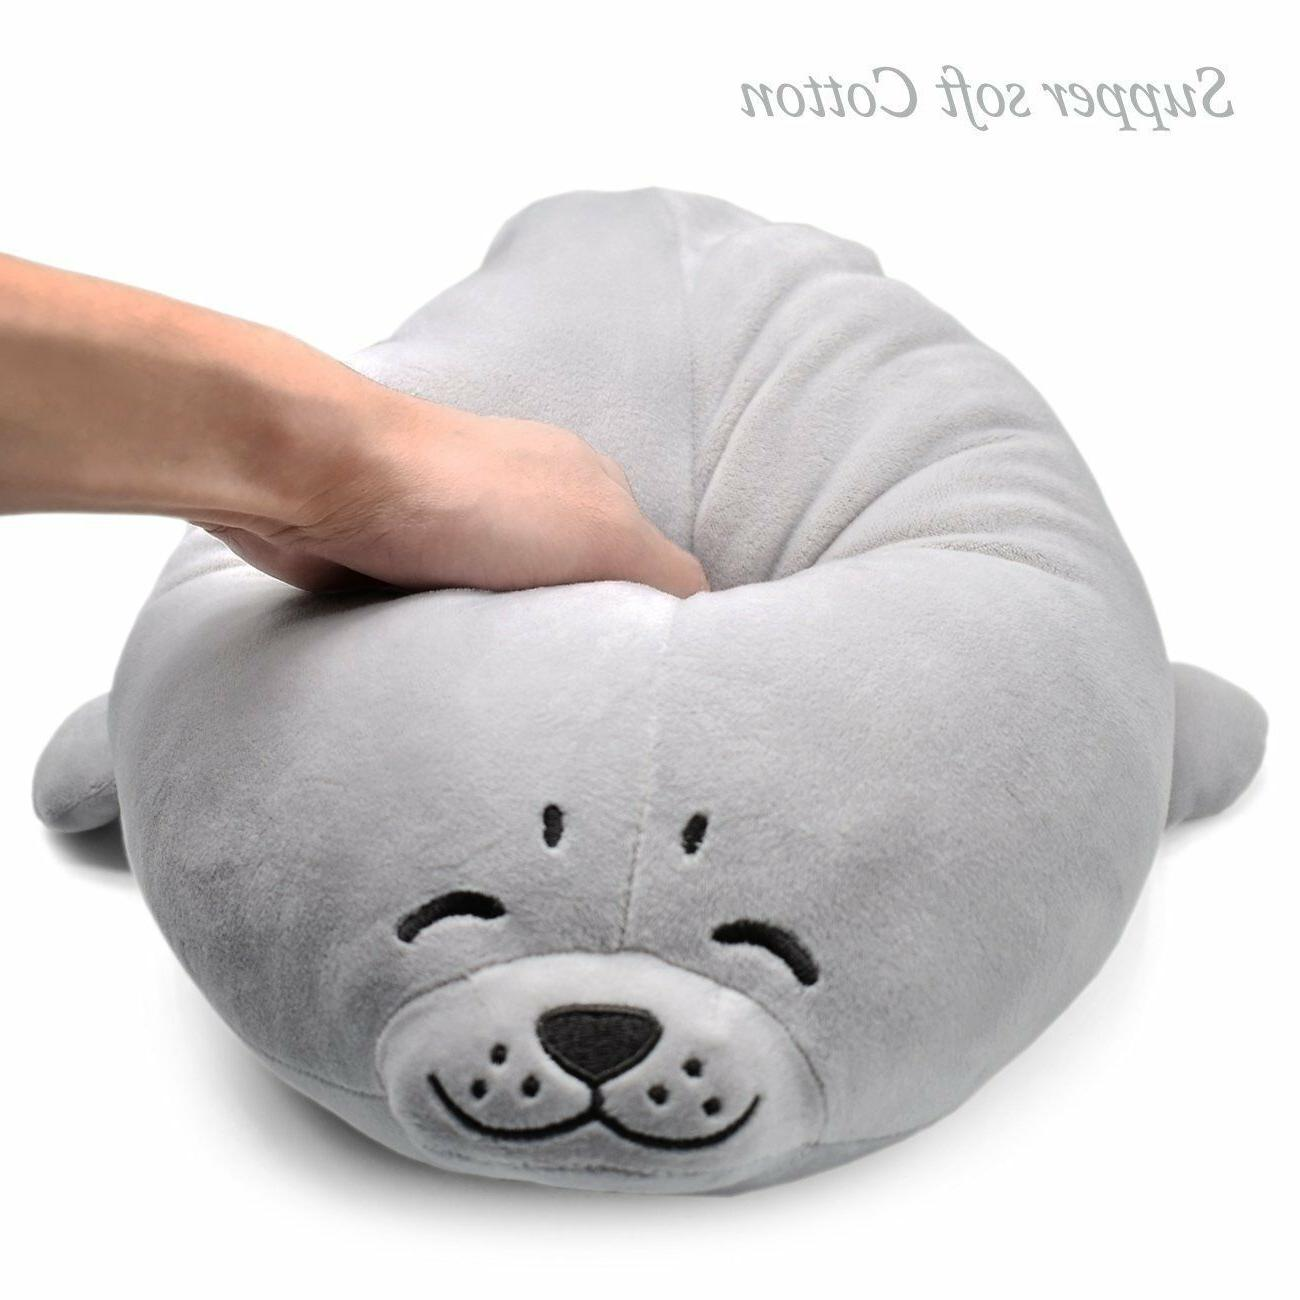 Stuffed Seal Plush Soft Giant Big Toy Kid Chair Chest Pets New